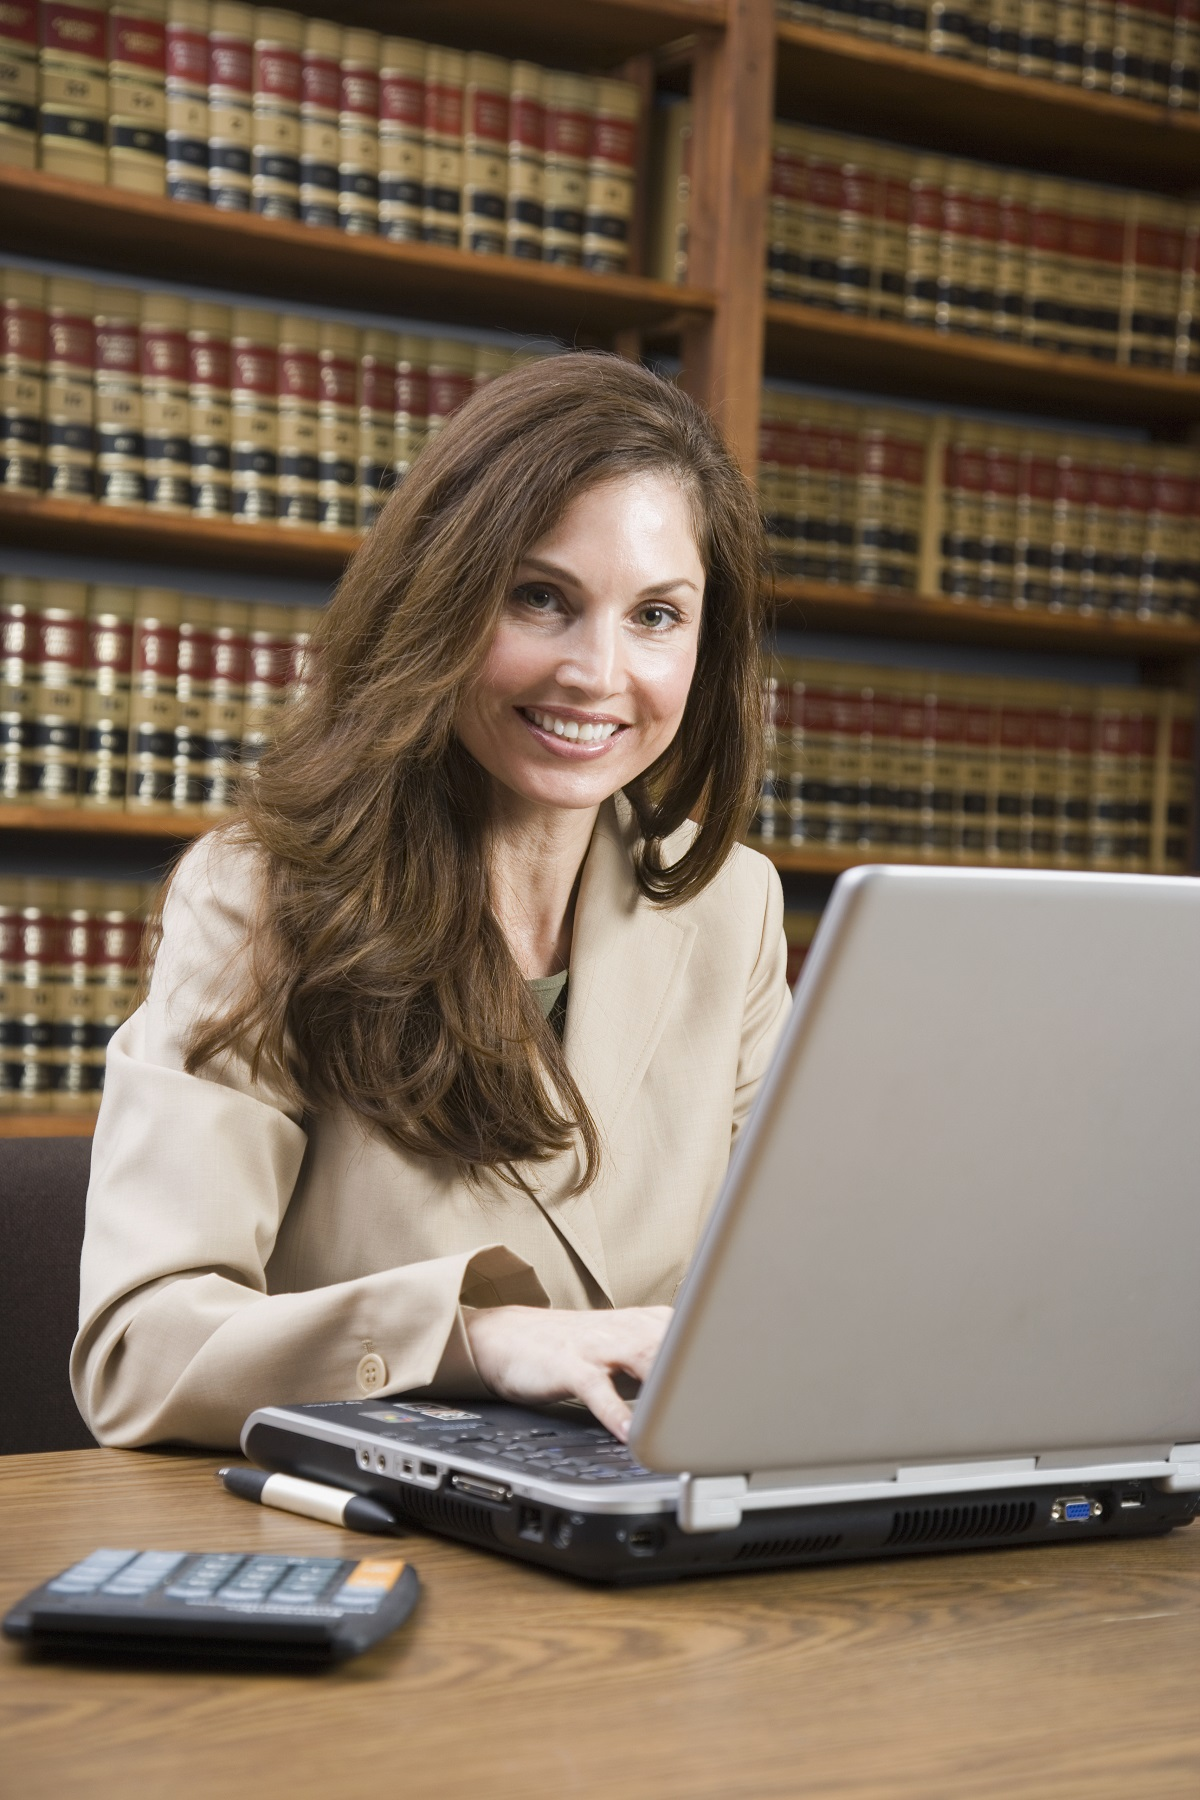 paralegal working in her office